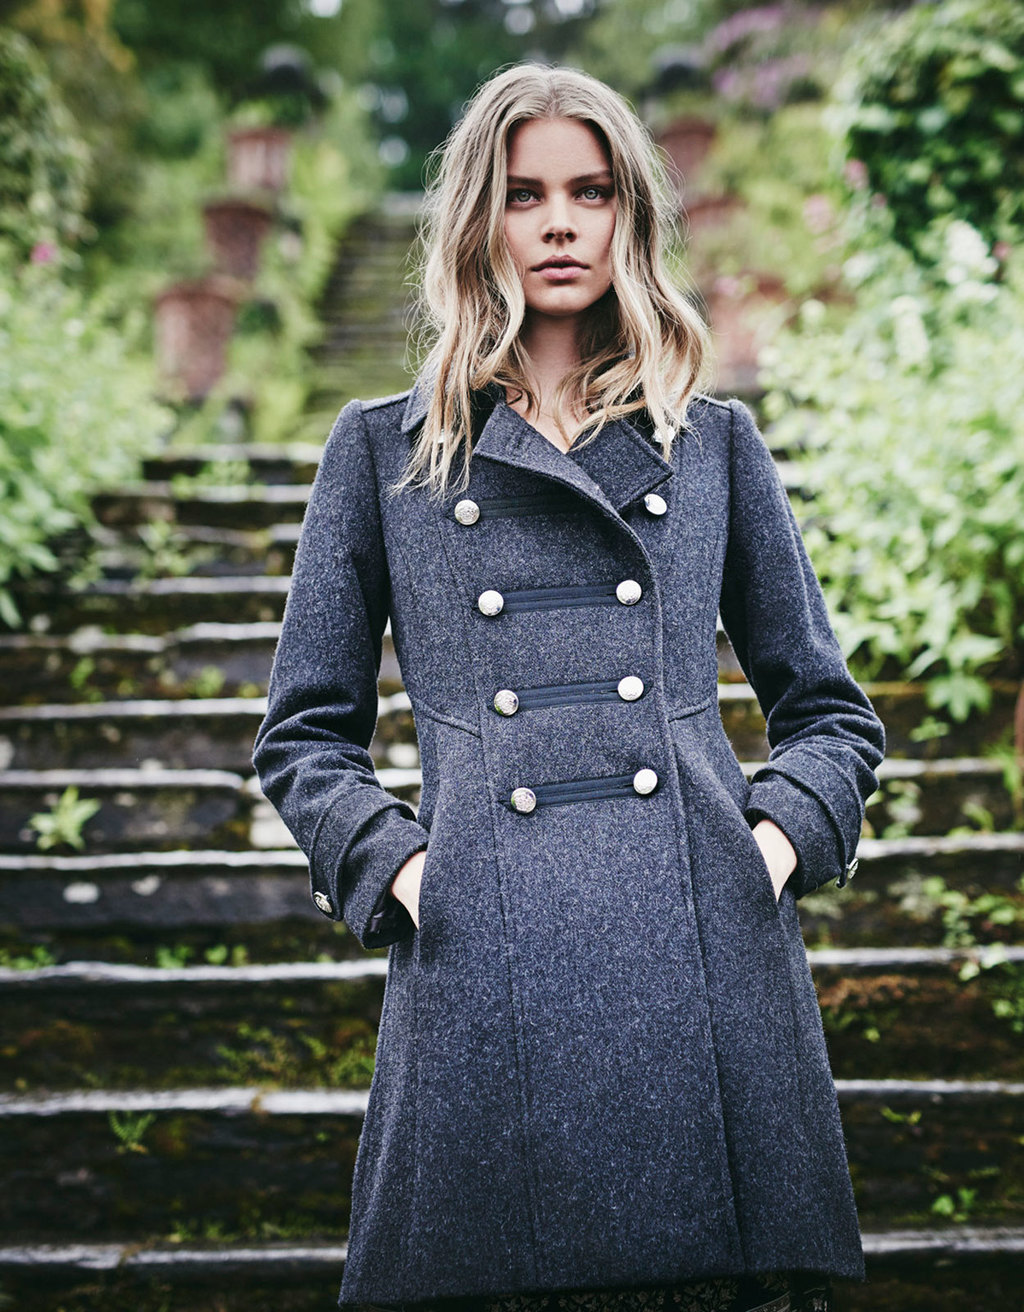 Adrianna Military Coat - pattern: plain; style: double breasted; collar: standard lapel/rever collar; length: mid thigh; predominant colour: charcoal; occasions: casual, creative work; fit: tailored/fitted; fibres: wool - mix; sleeve length: long sleeve; sleeve style: standard; collar break: high/illusion of break when open; pattern type: fabric; pattern size: standard; texture group: woven bulky/heavy; wardrobe: basic; season: a/w 2016; trends: military